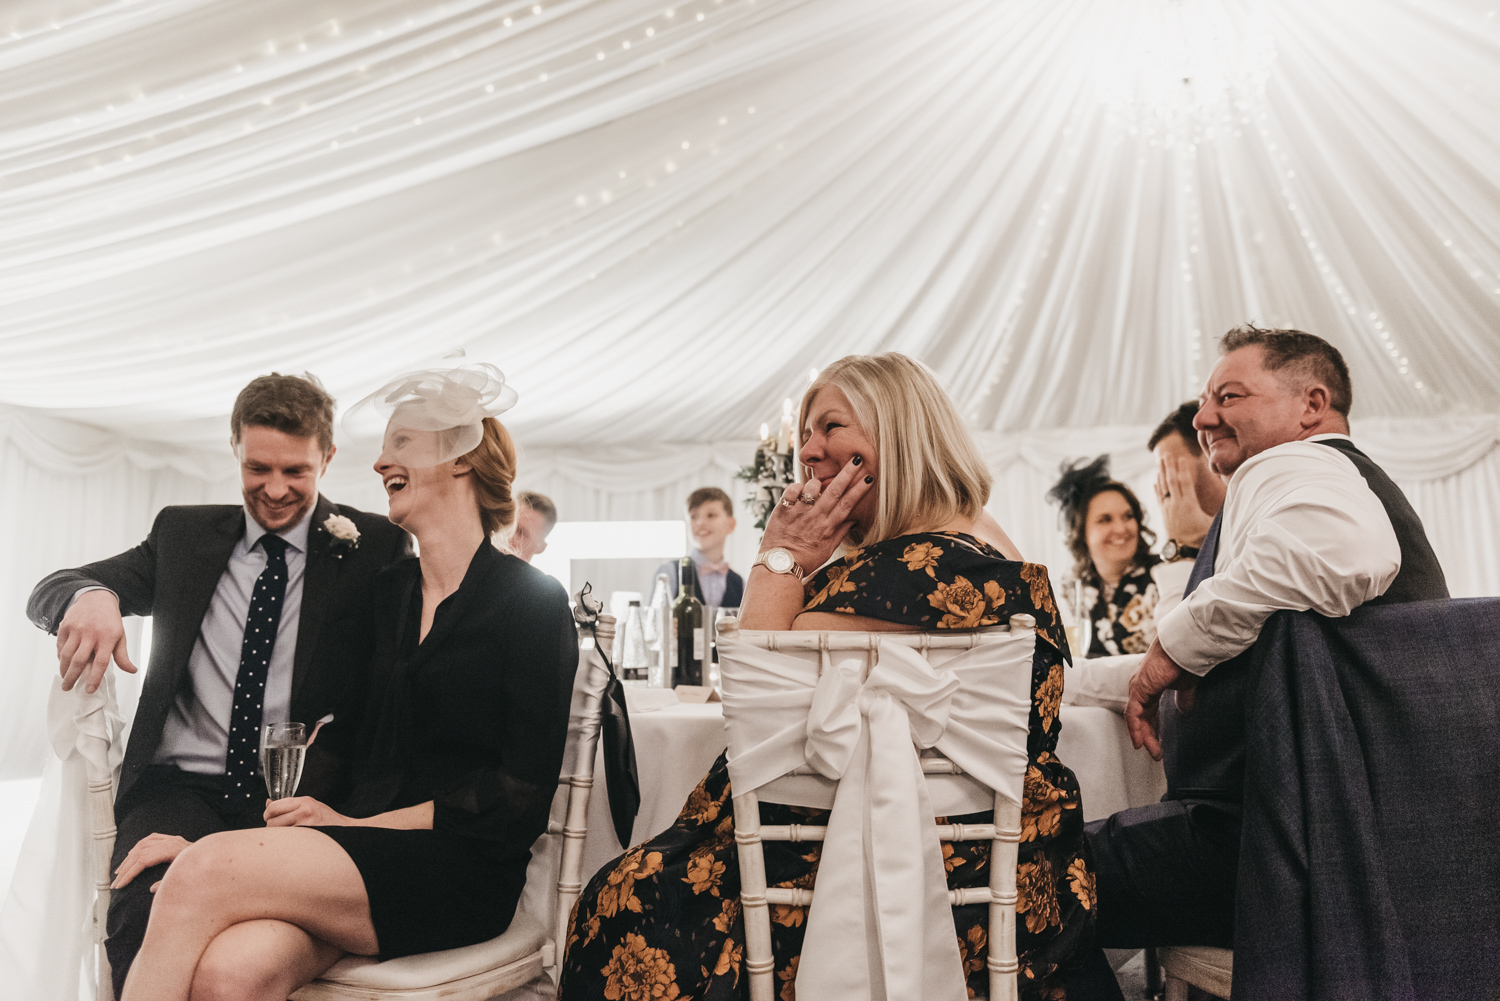 Wedding guests crying